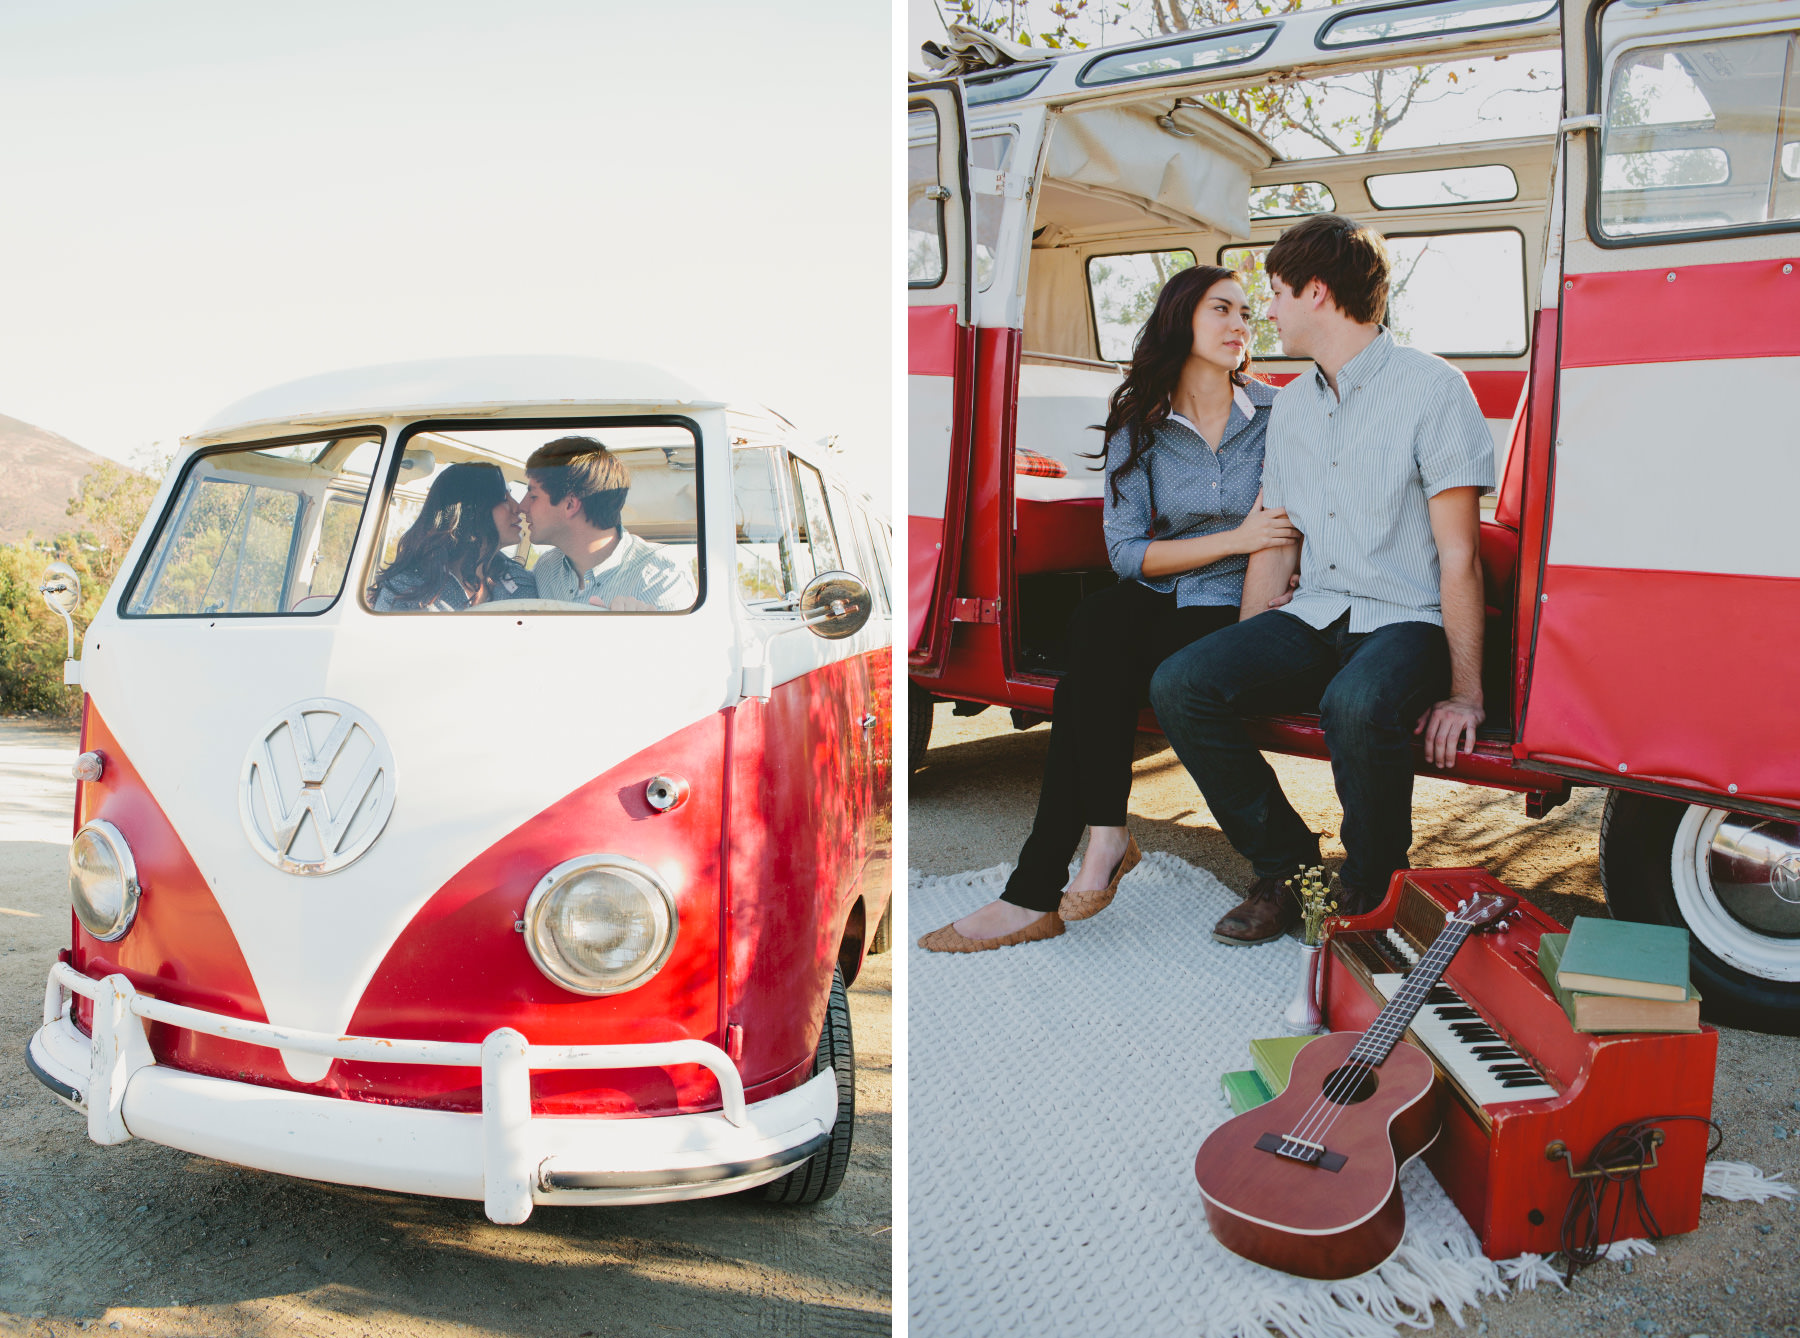 VW bus engagement